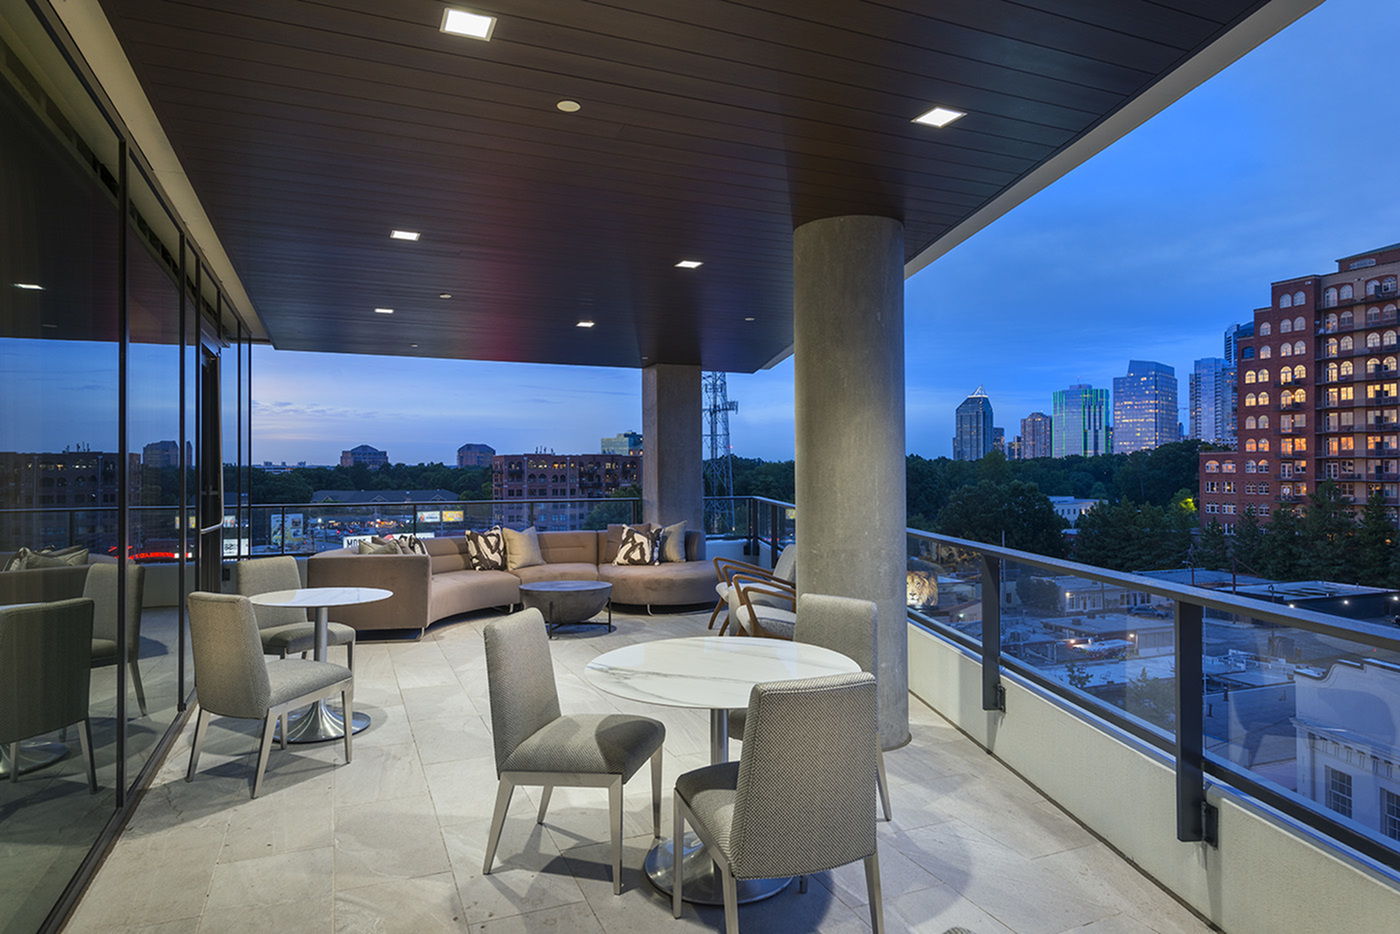 Image of Open-air loggia with dining areas and skyline views for Hanover Buckhead Village